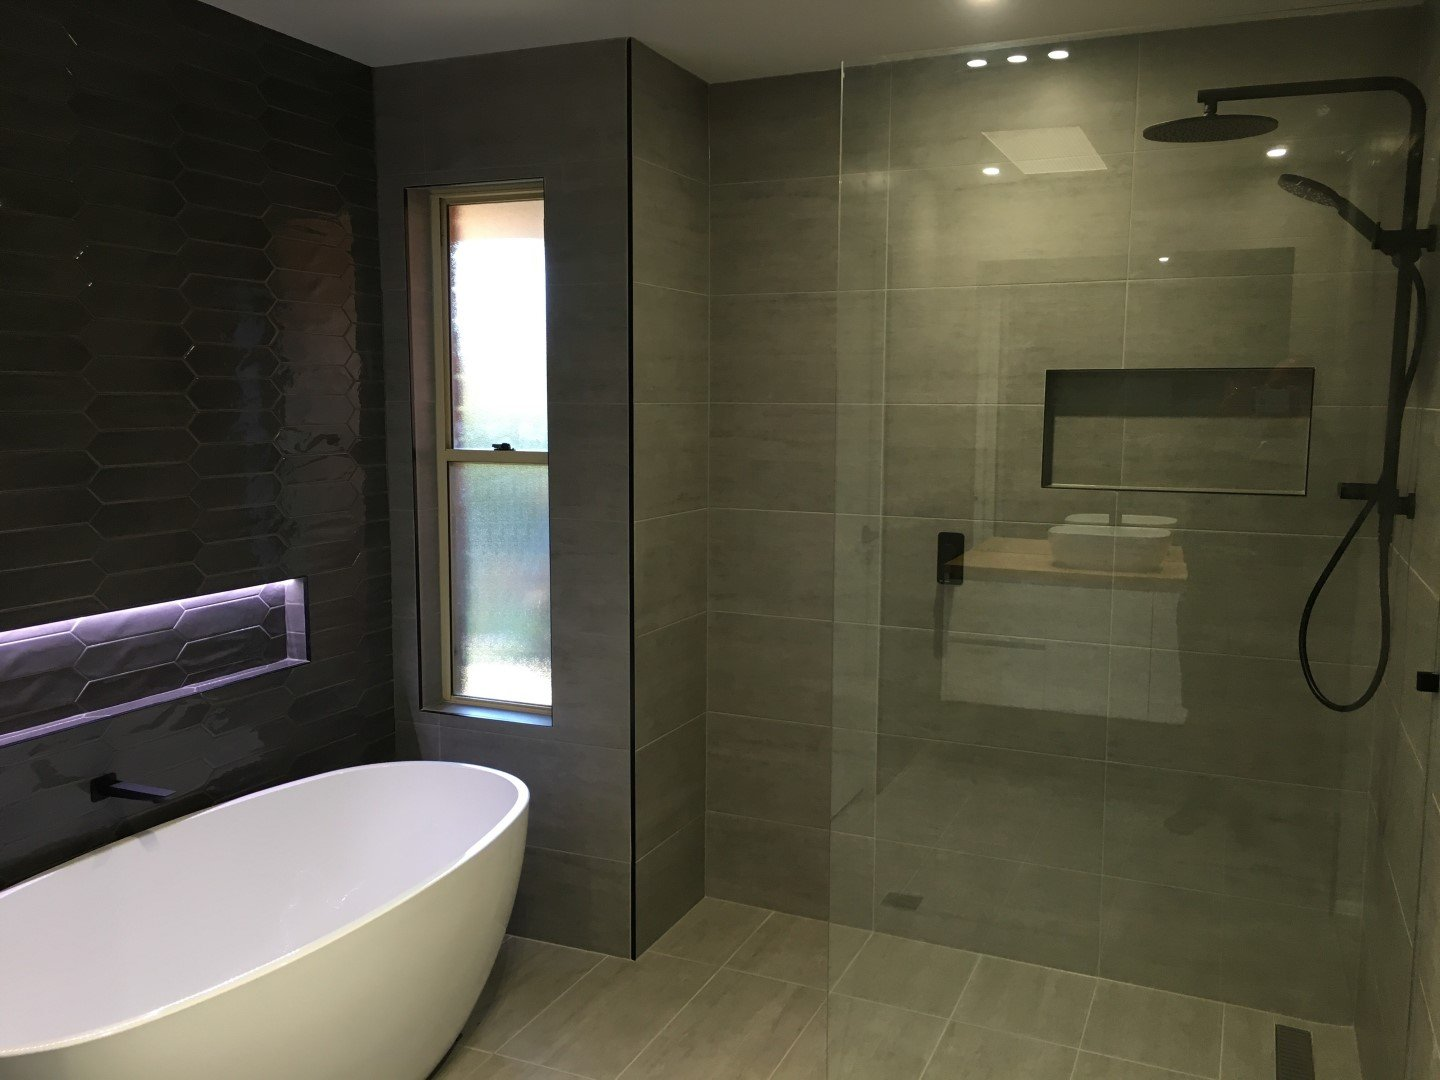 bathroom with bathtub and shower on the side with glass divider